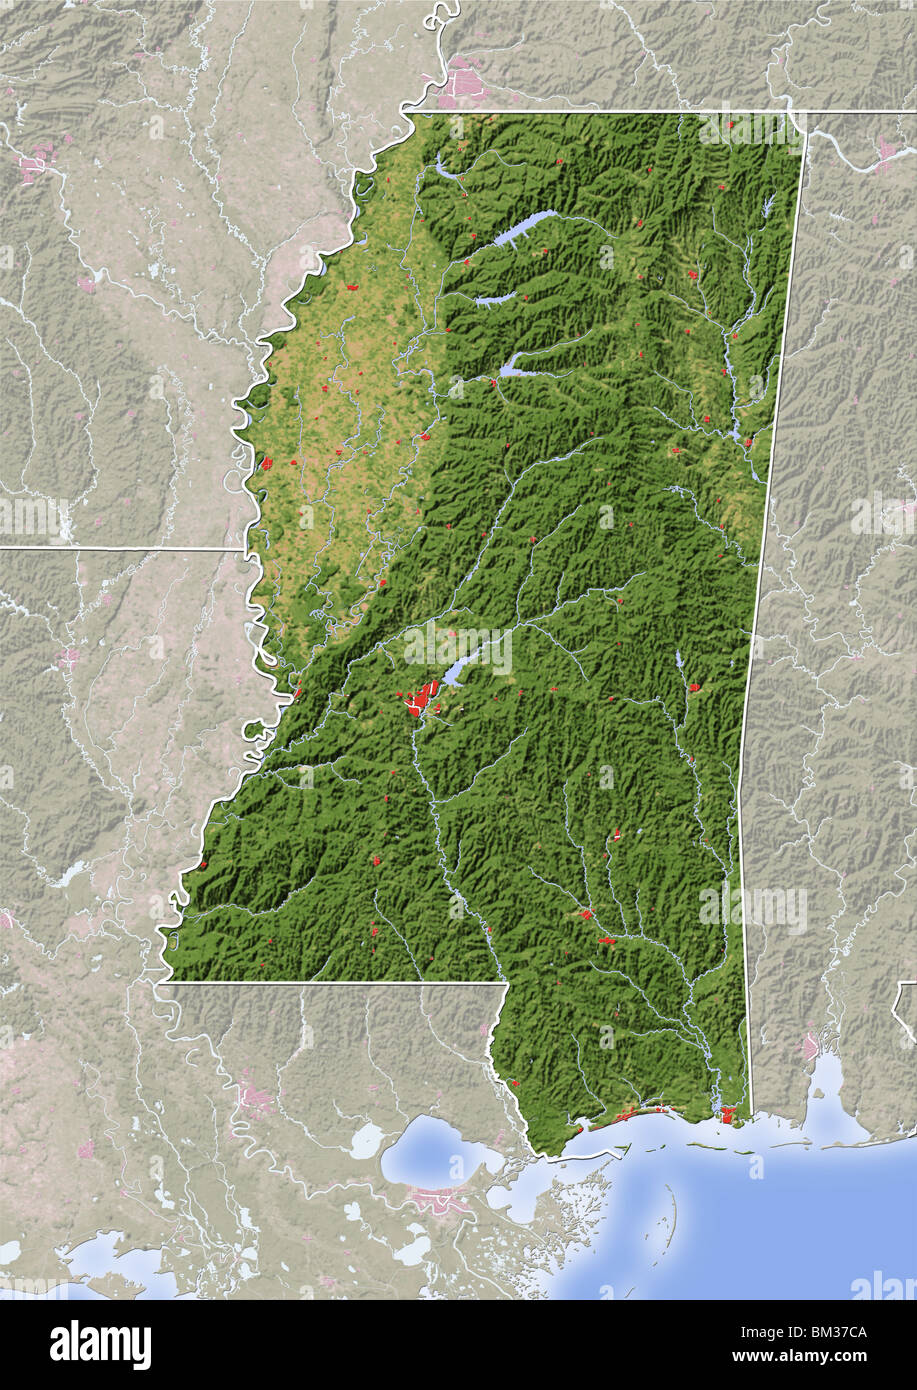 Mississippi Shaded Relief Map Stock Photo Alamy